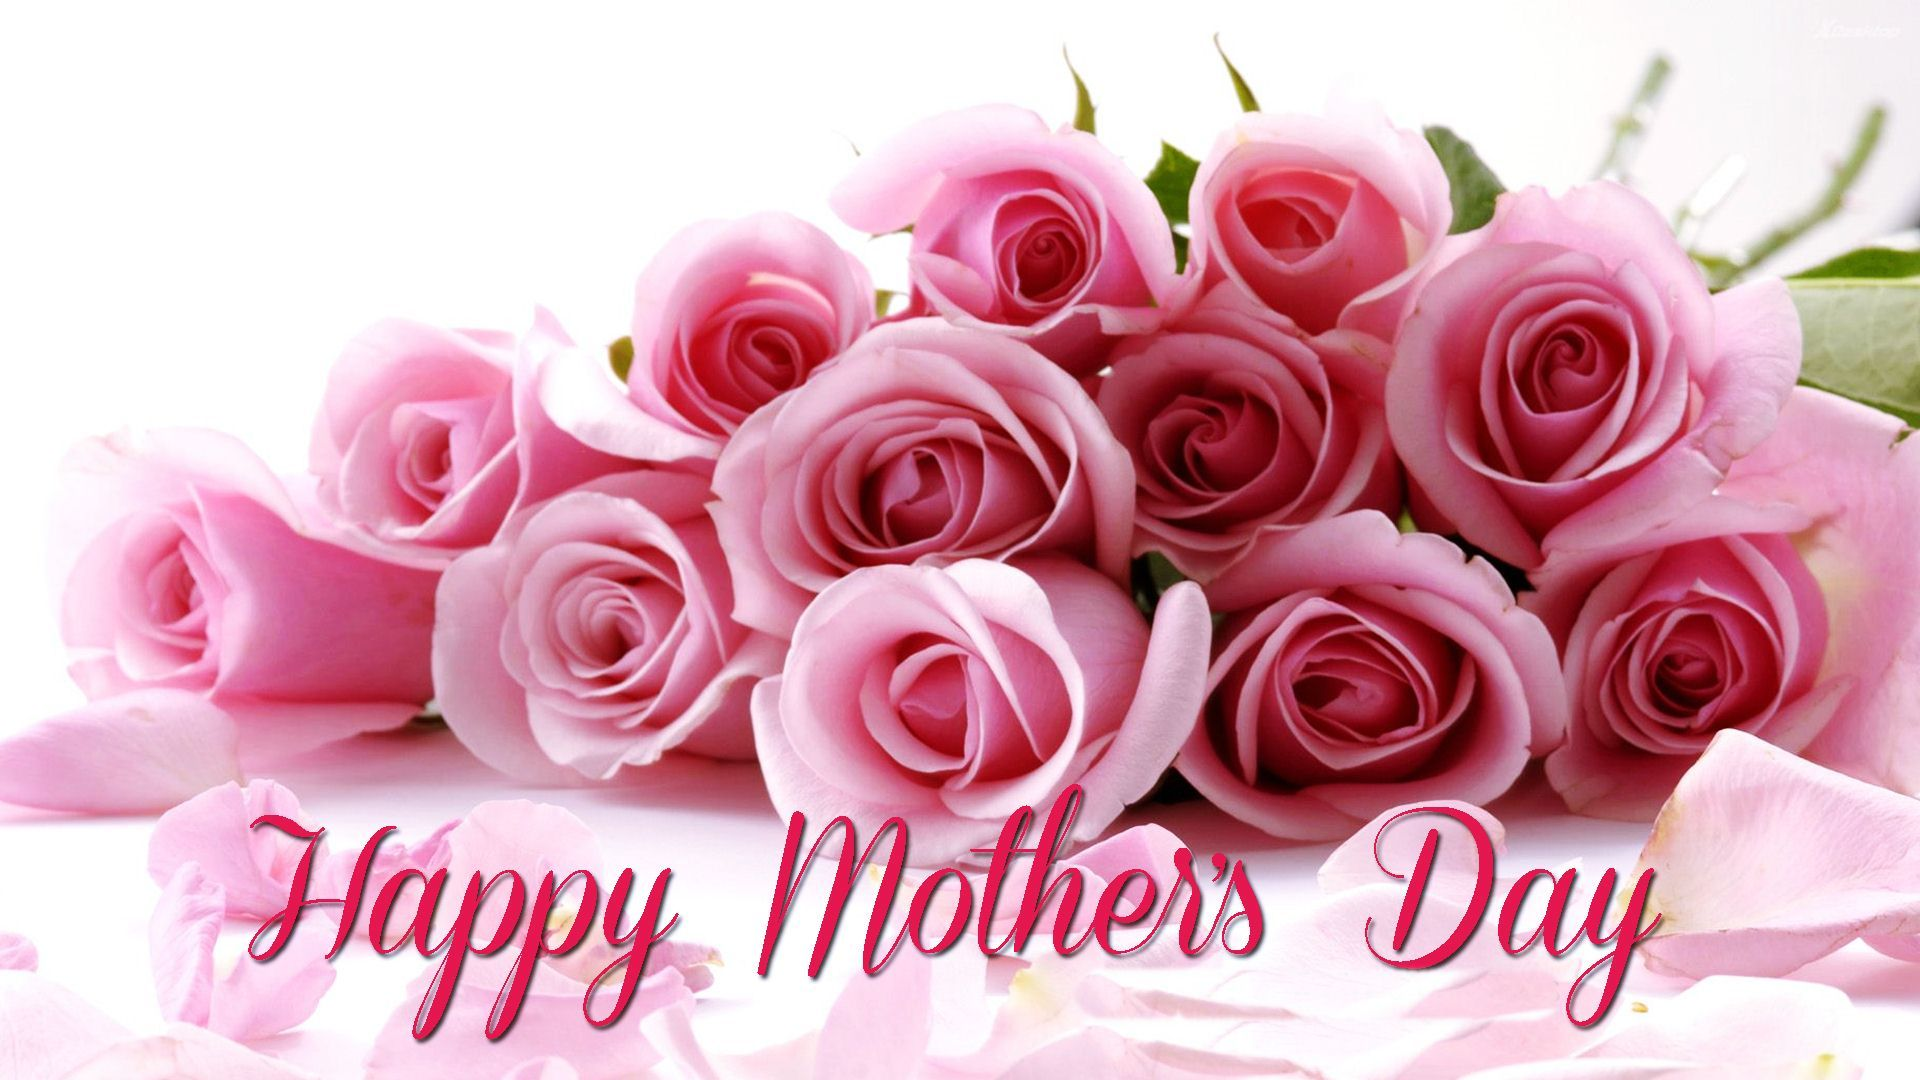 Happy Mothers Day Pic And Quotes Download Ide Romantis Mawar